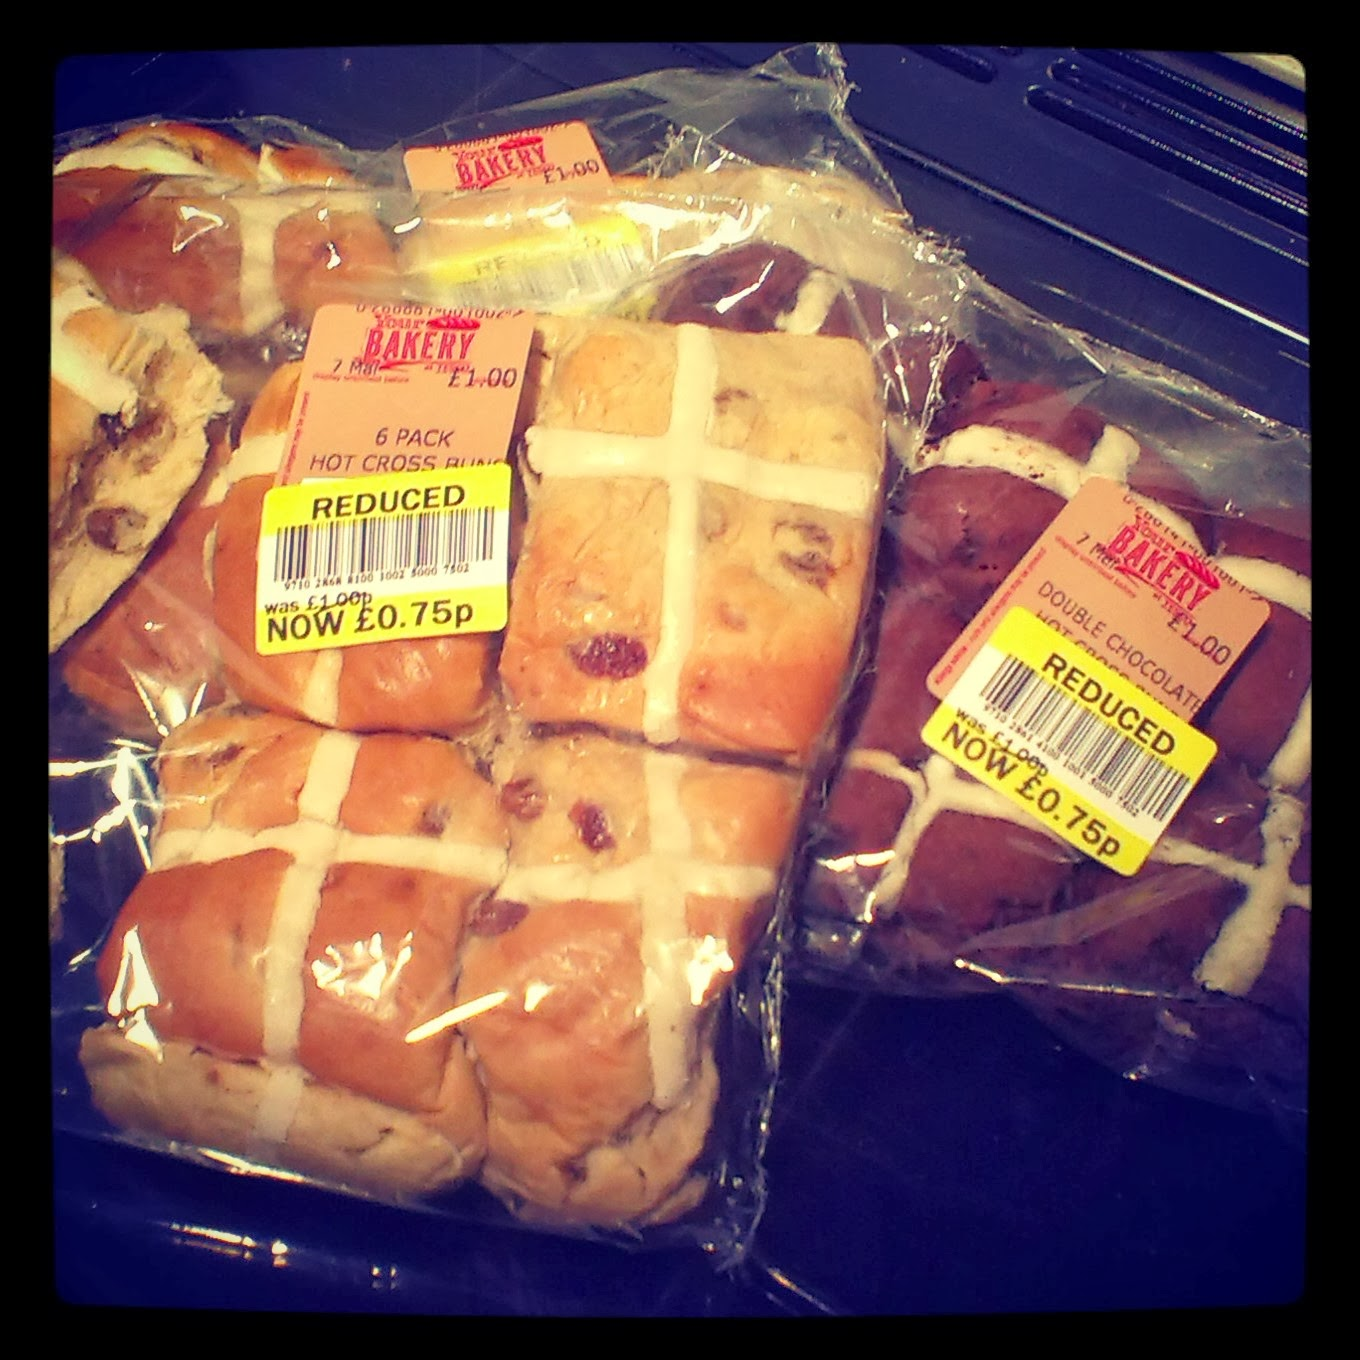 Reduced price hot cross buns